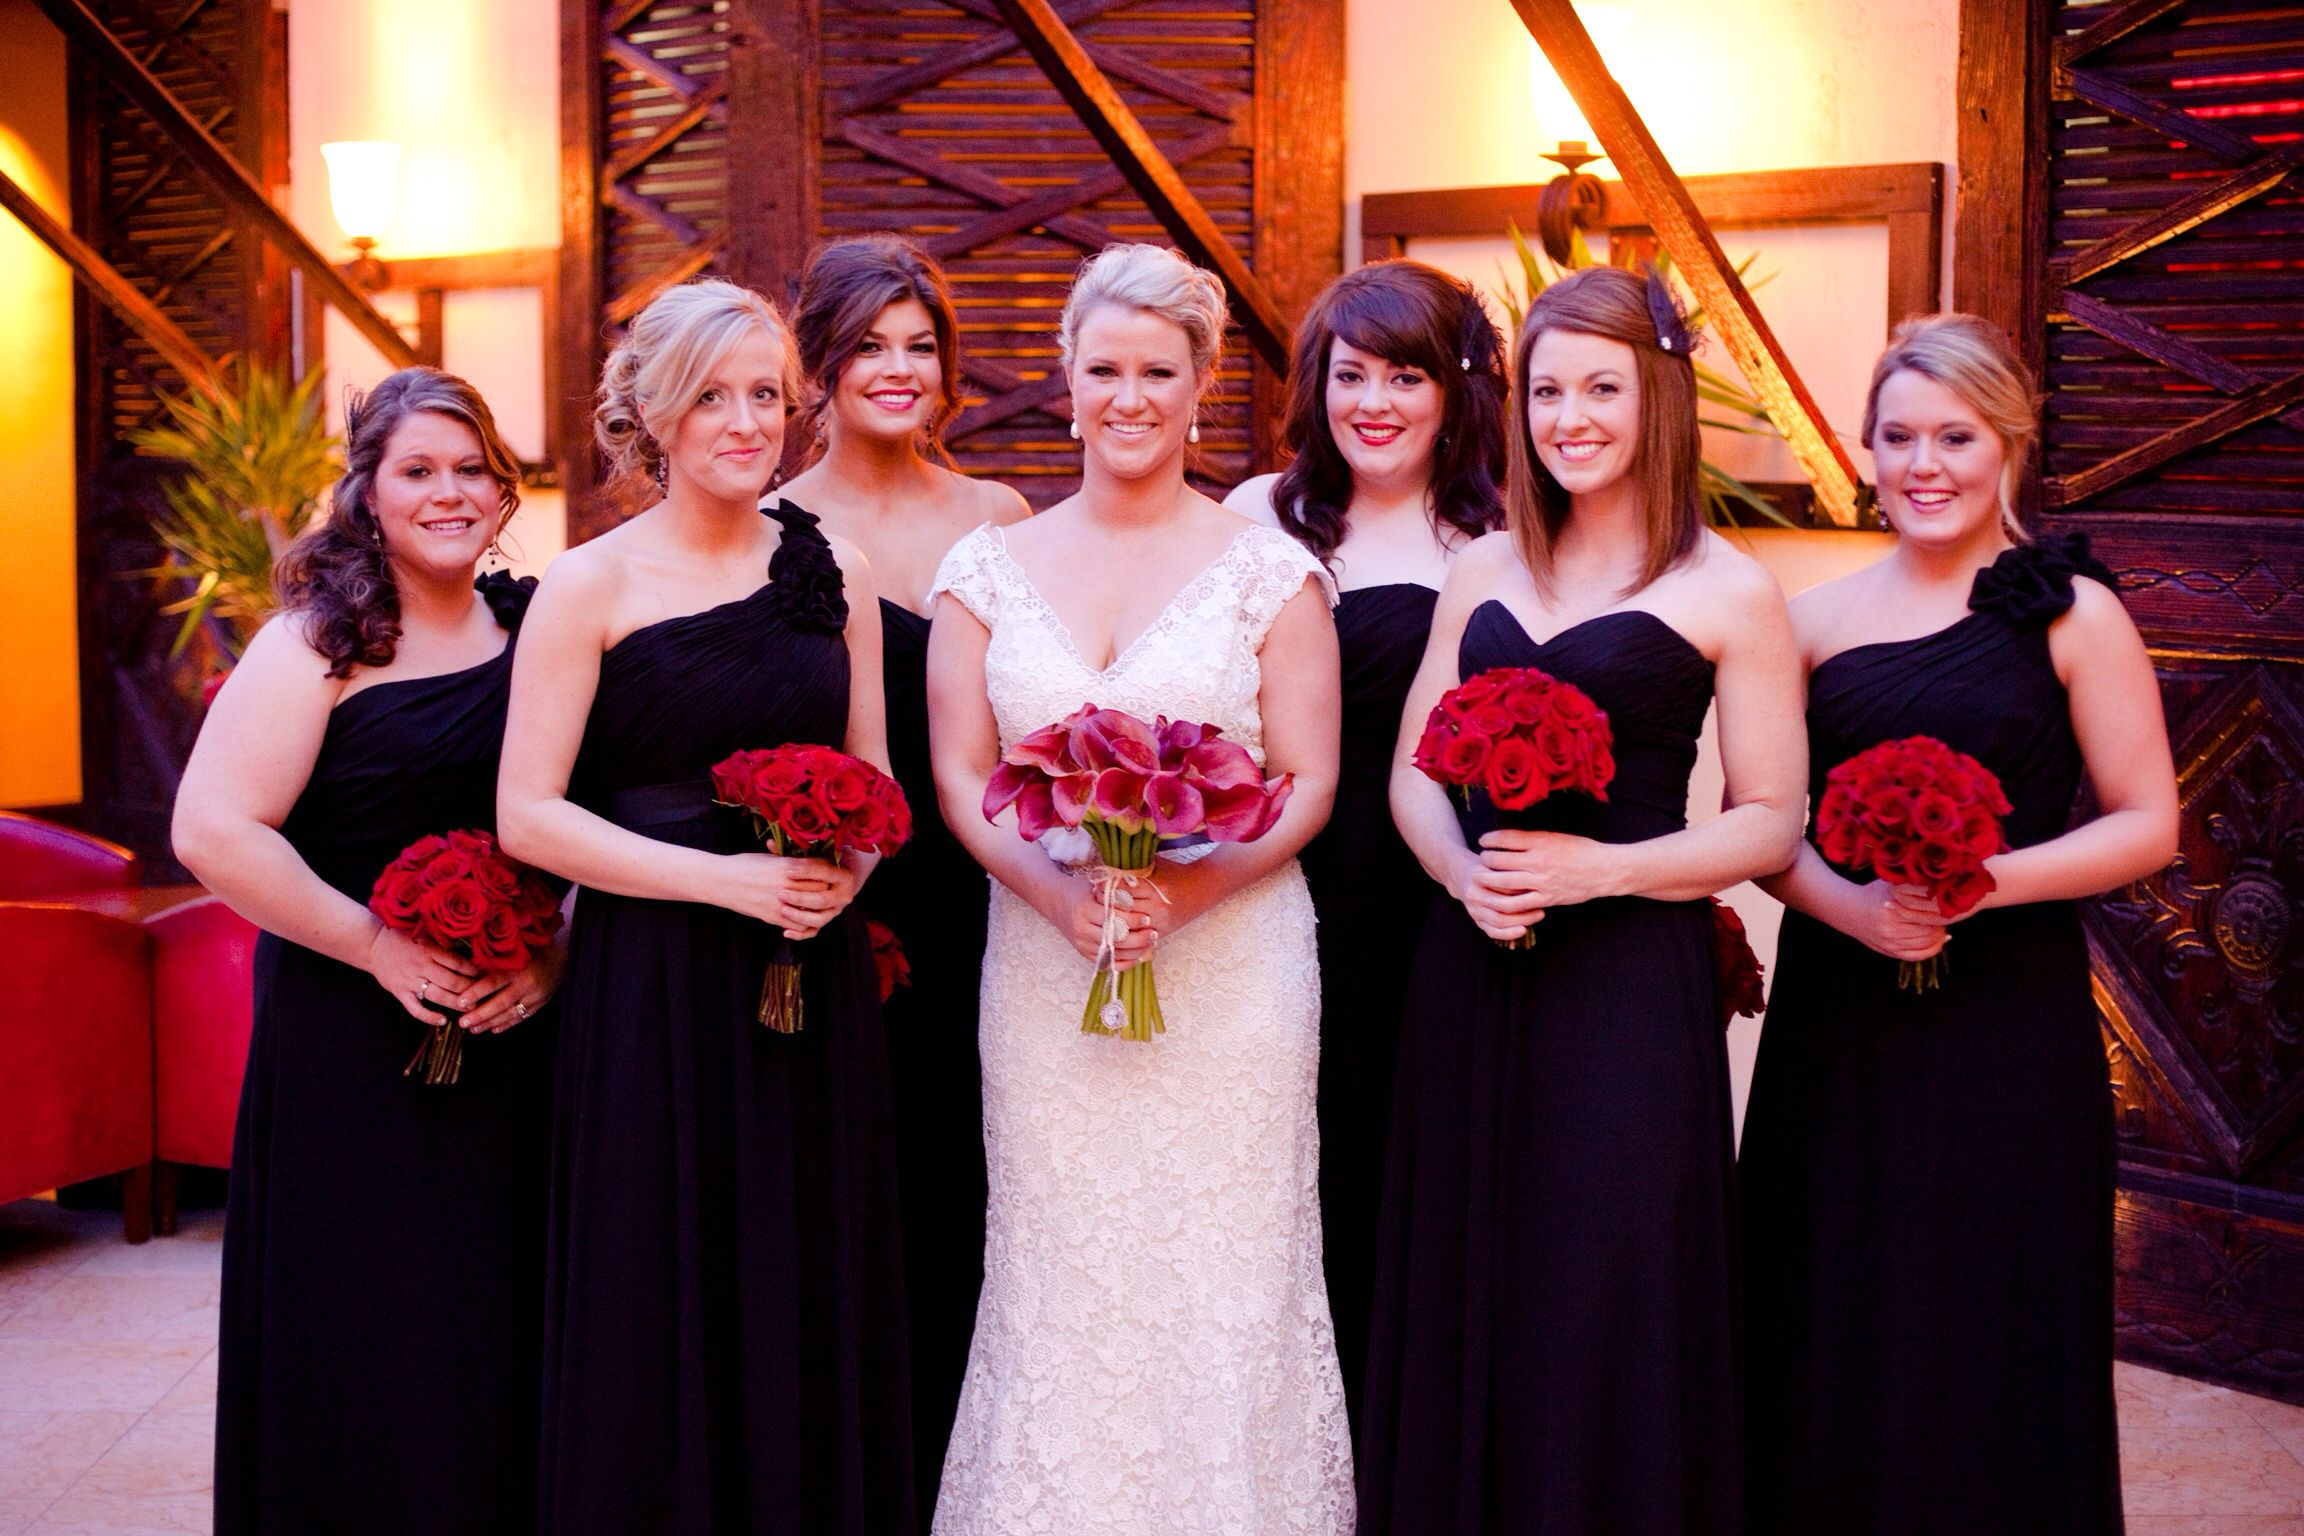 Rock and roll red wedding - black bridesmaids dresses with feather ...